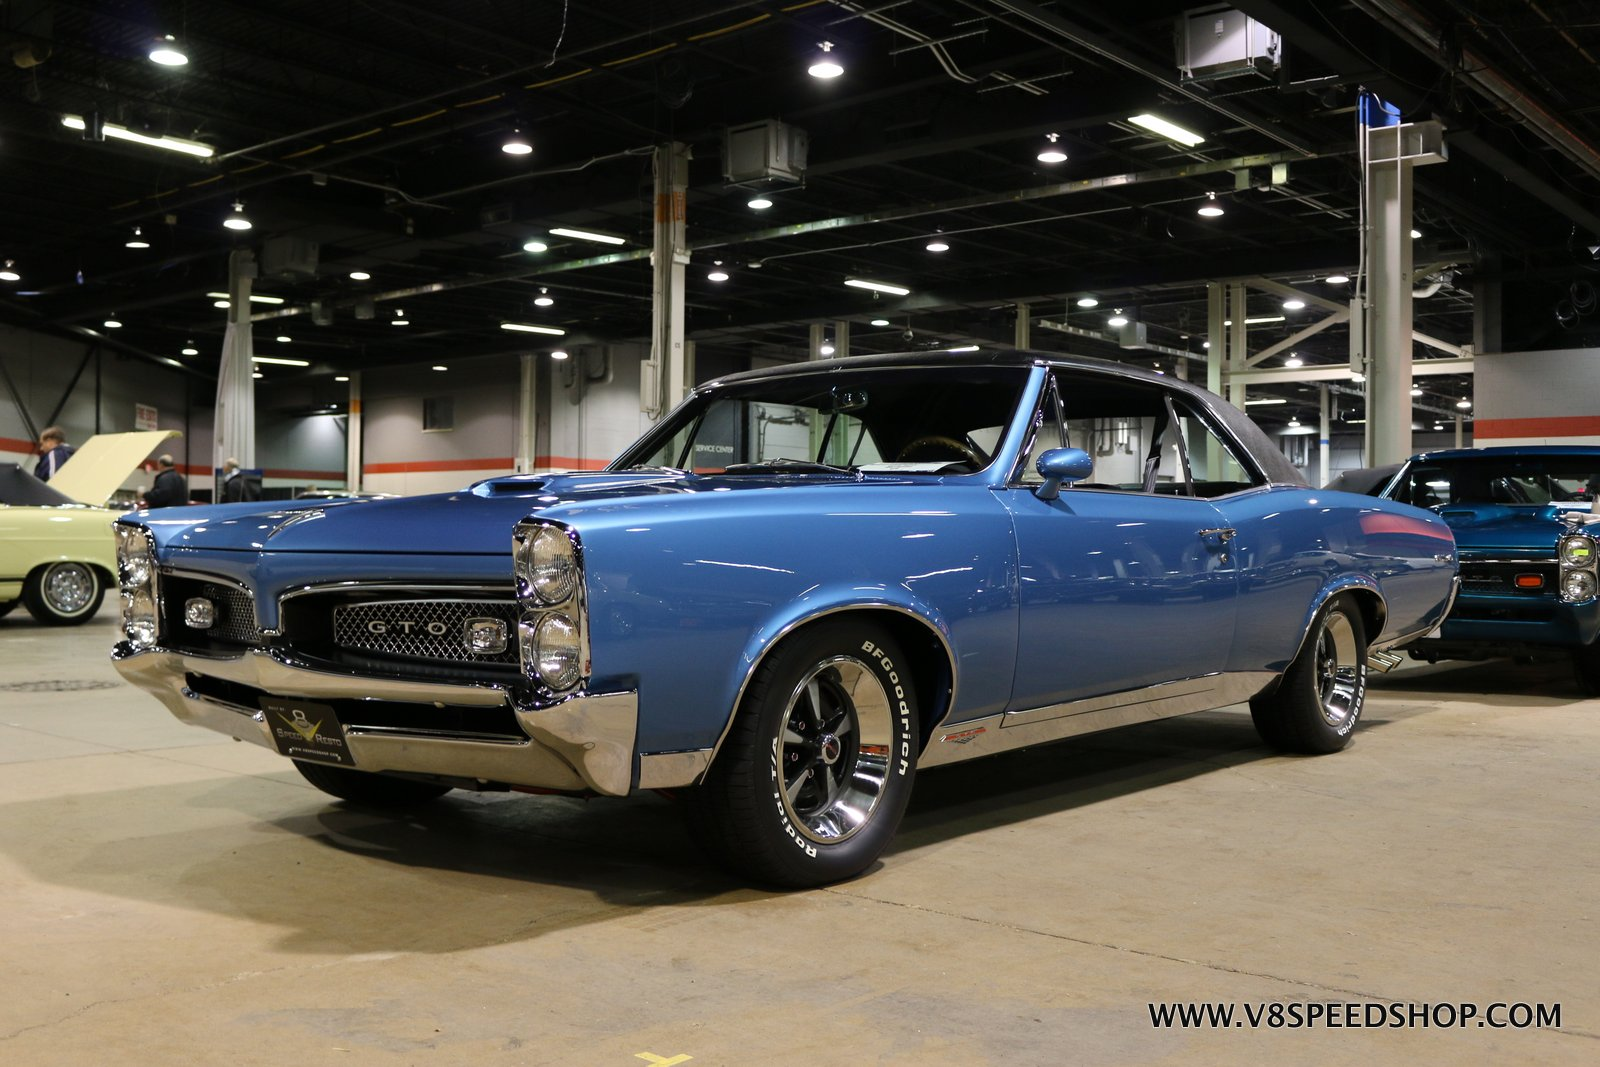 1967 Pontiac GTO Restoration Photo Gallery at V8 Speed and Resto Shop